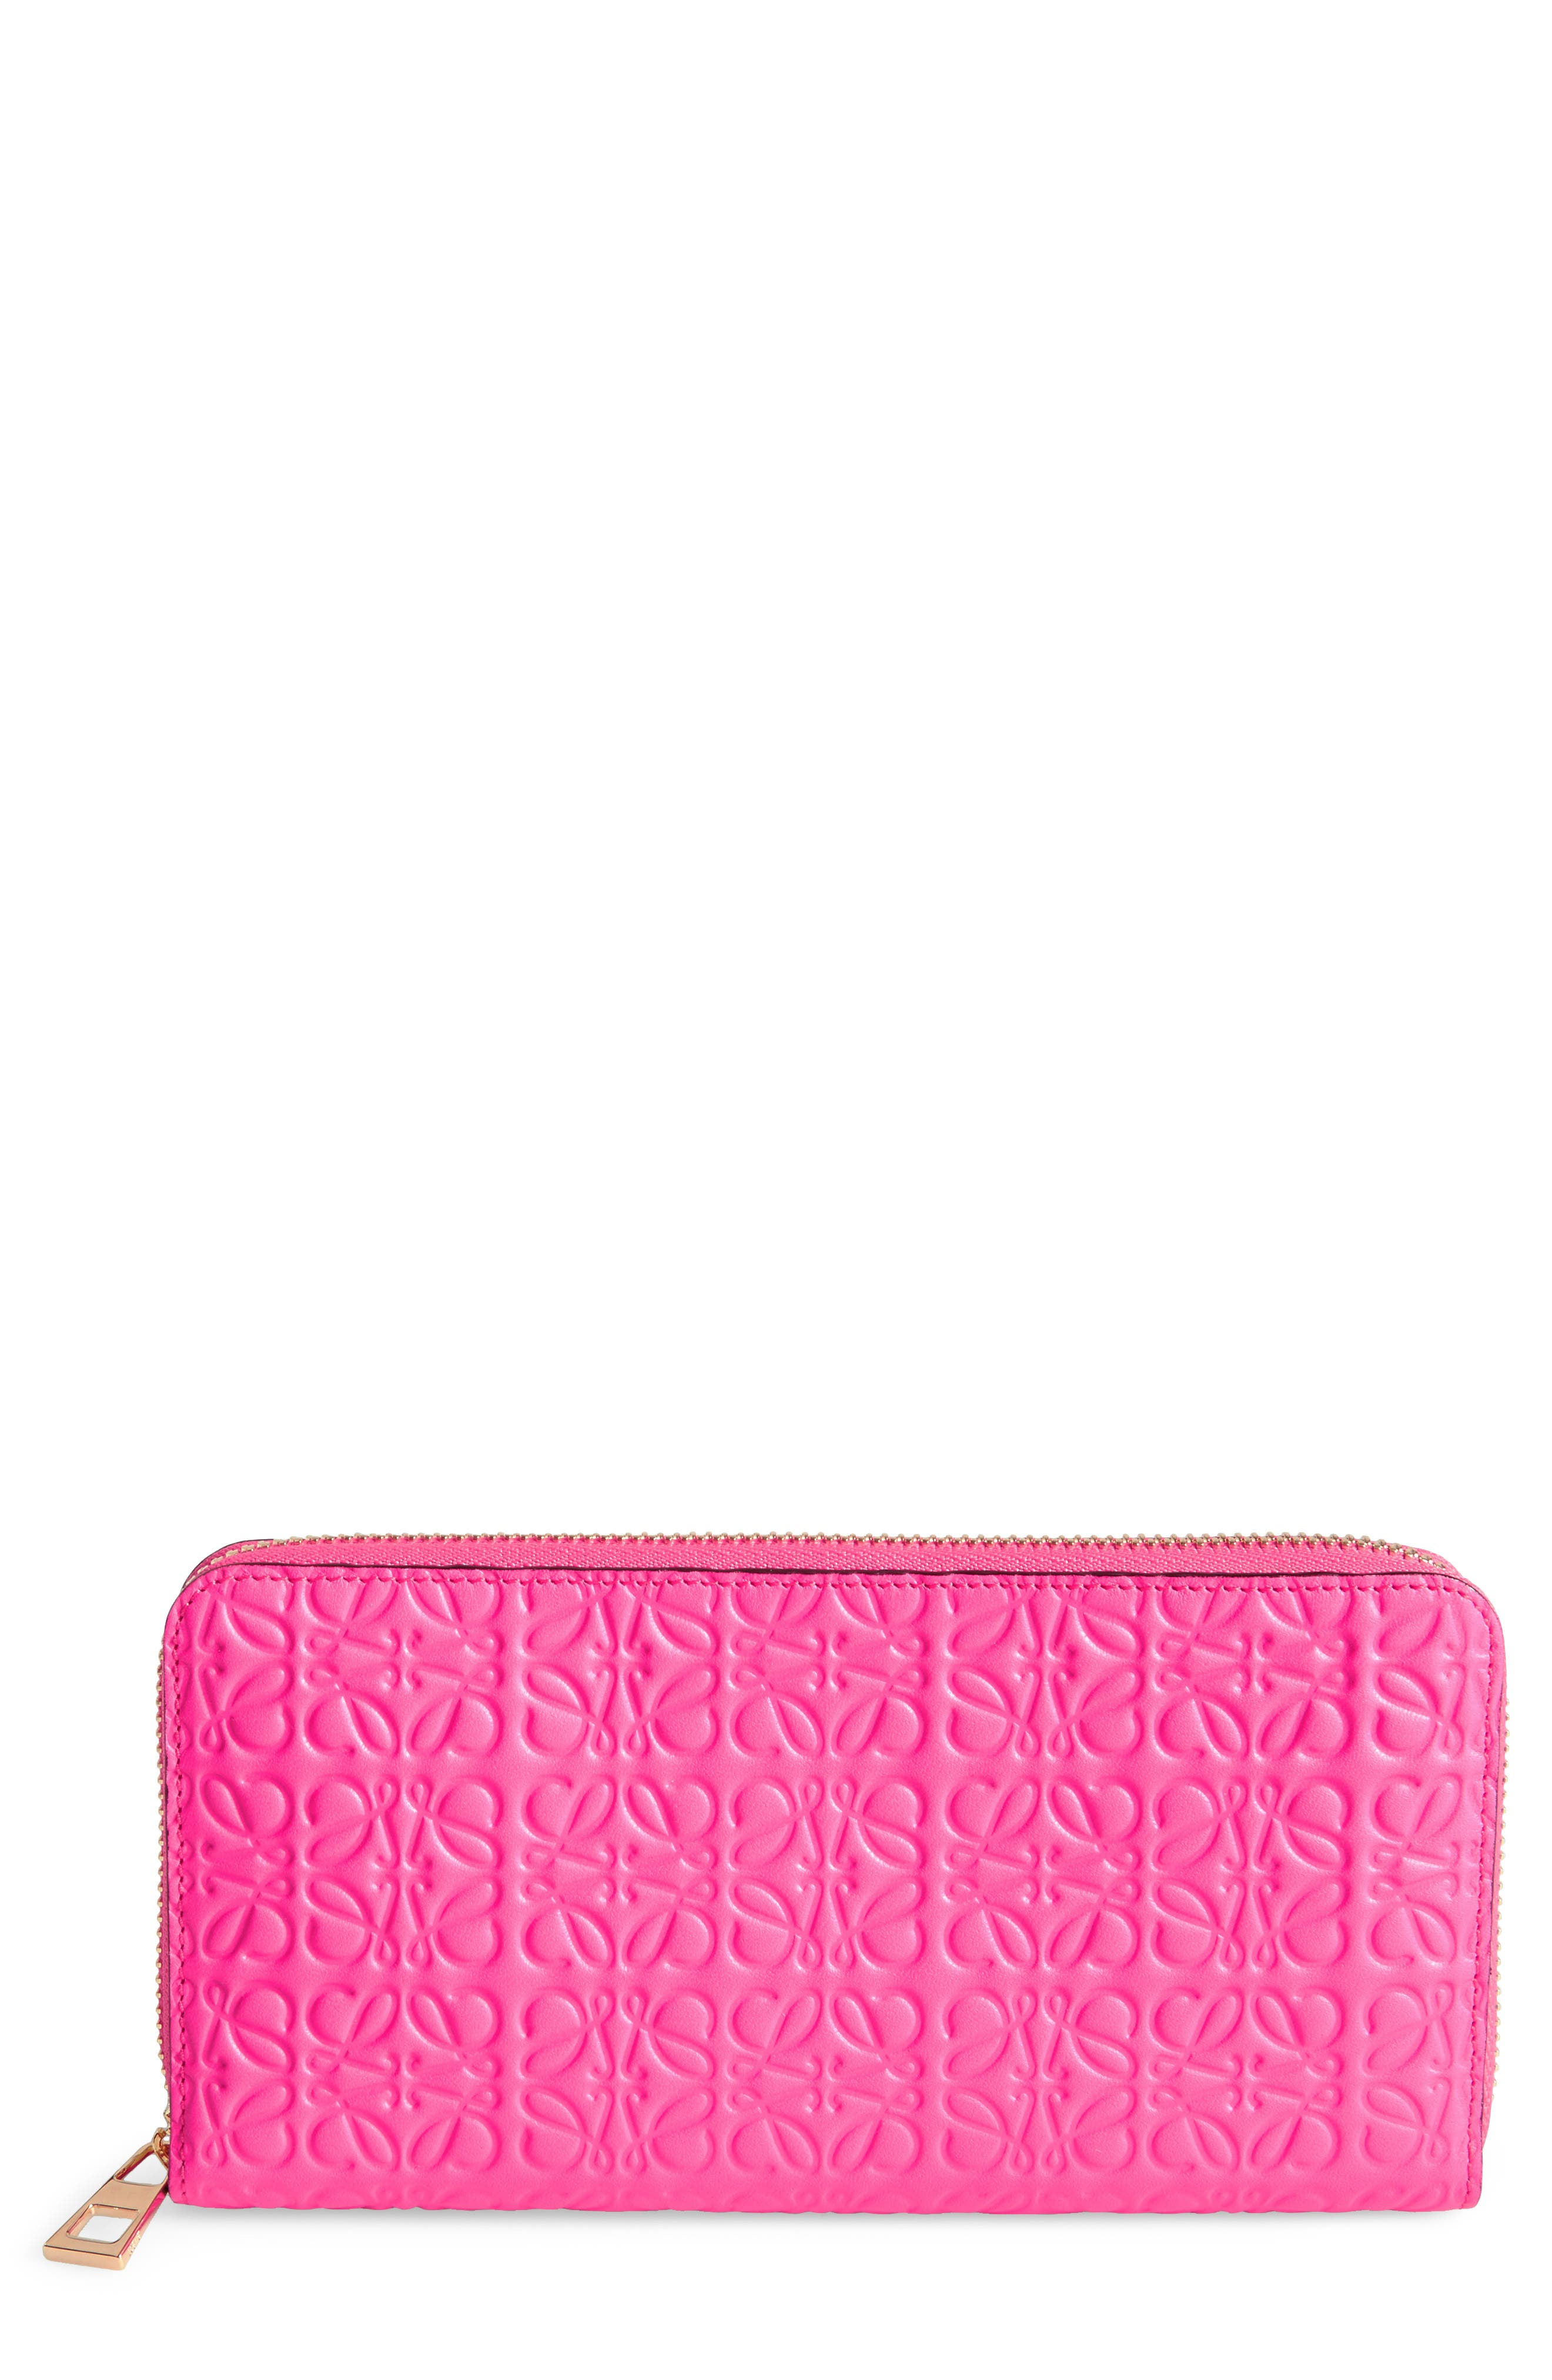 Leather Zip Around Wallet,                         Main,                         color, 690